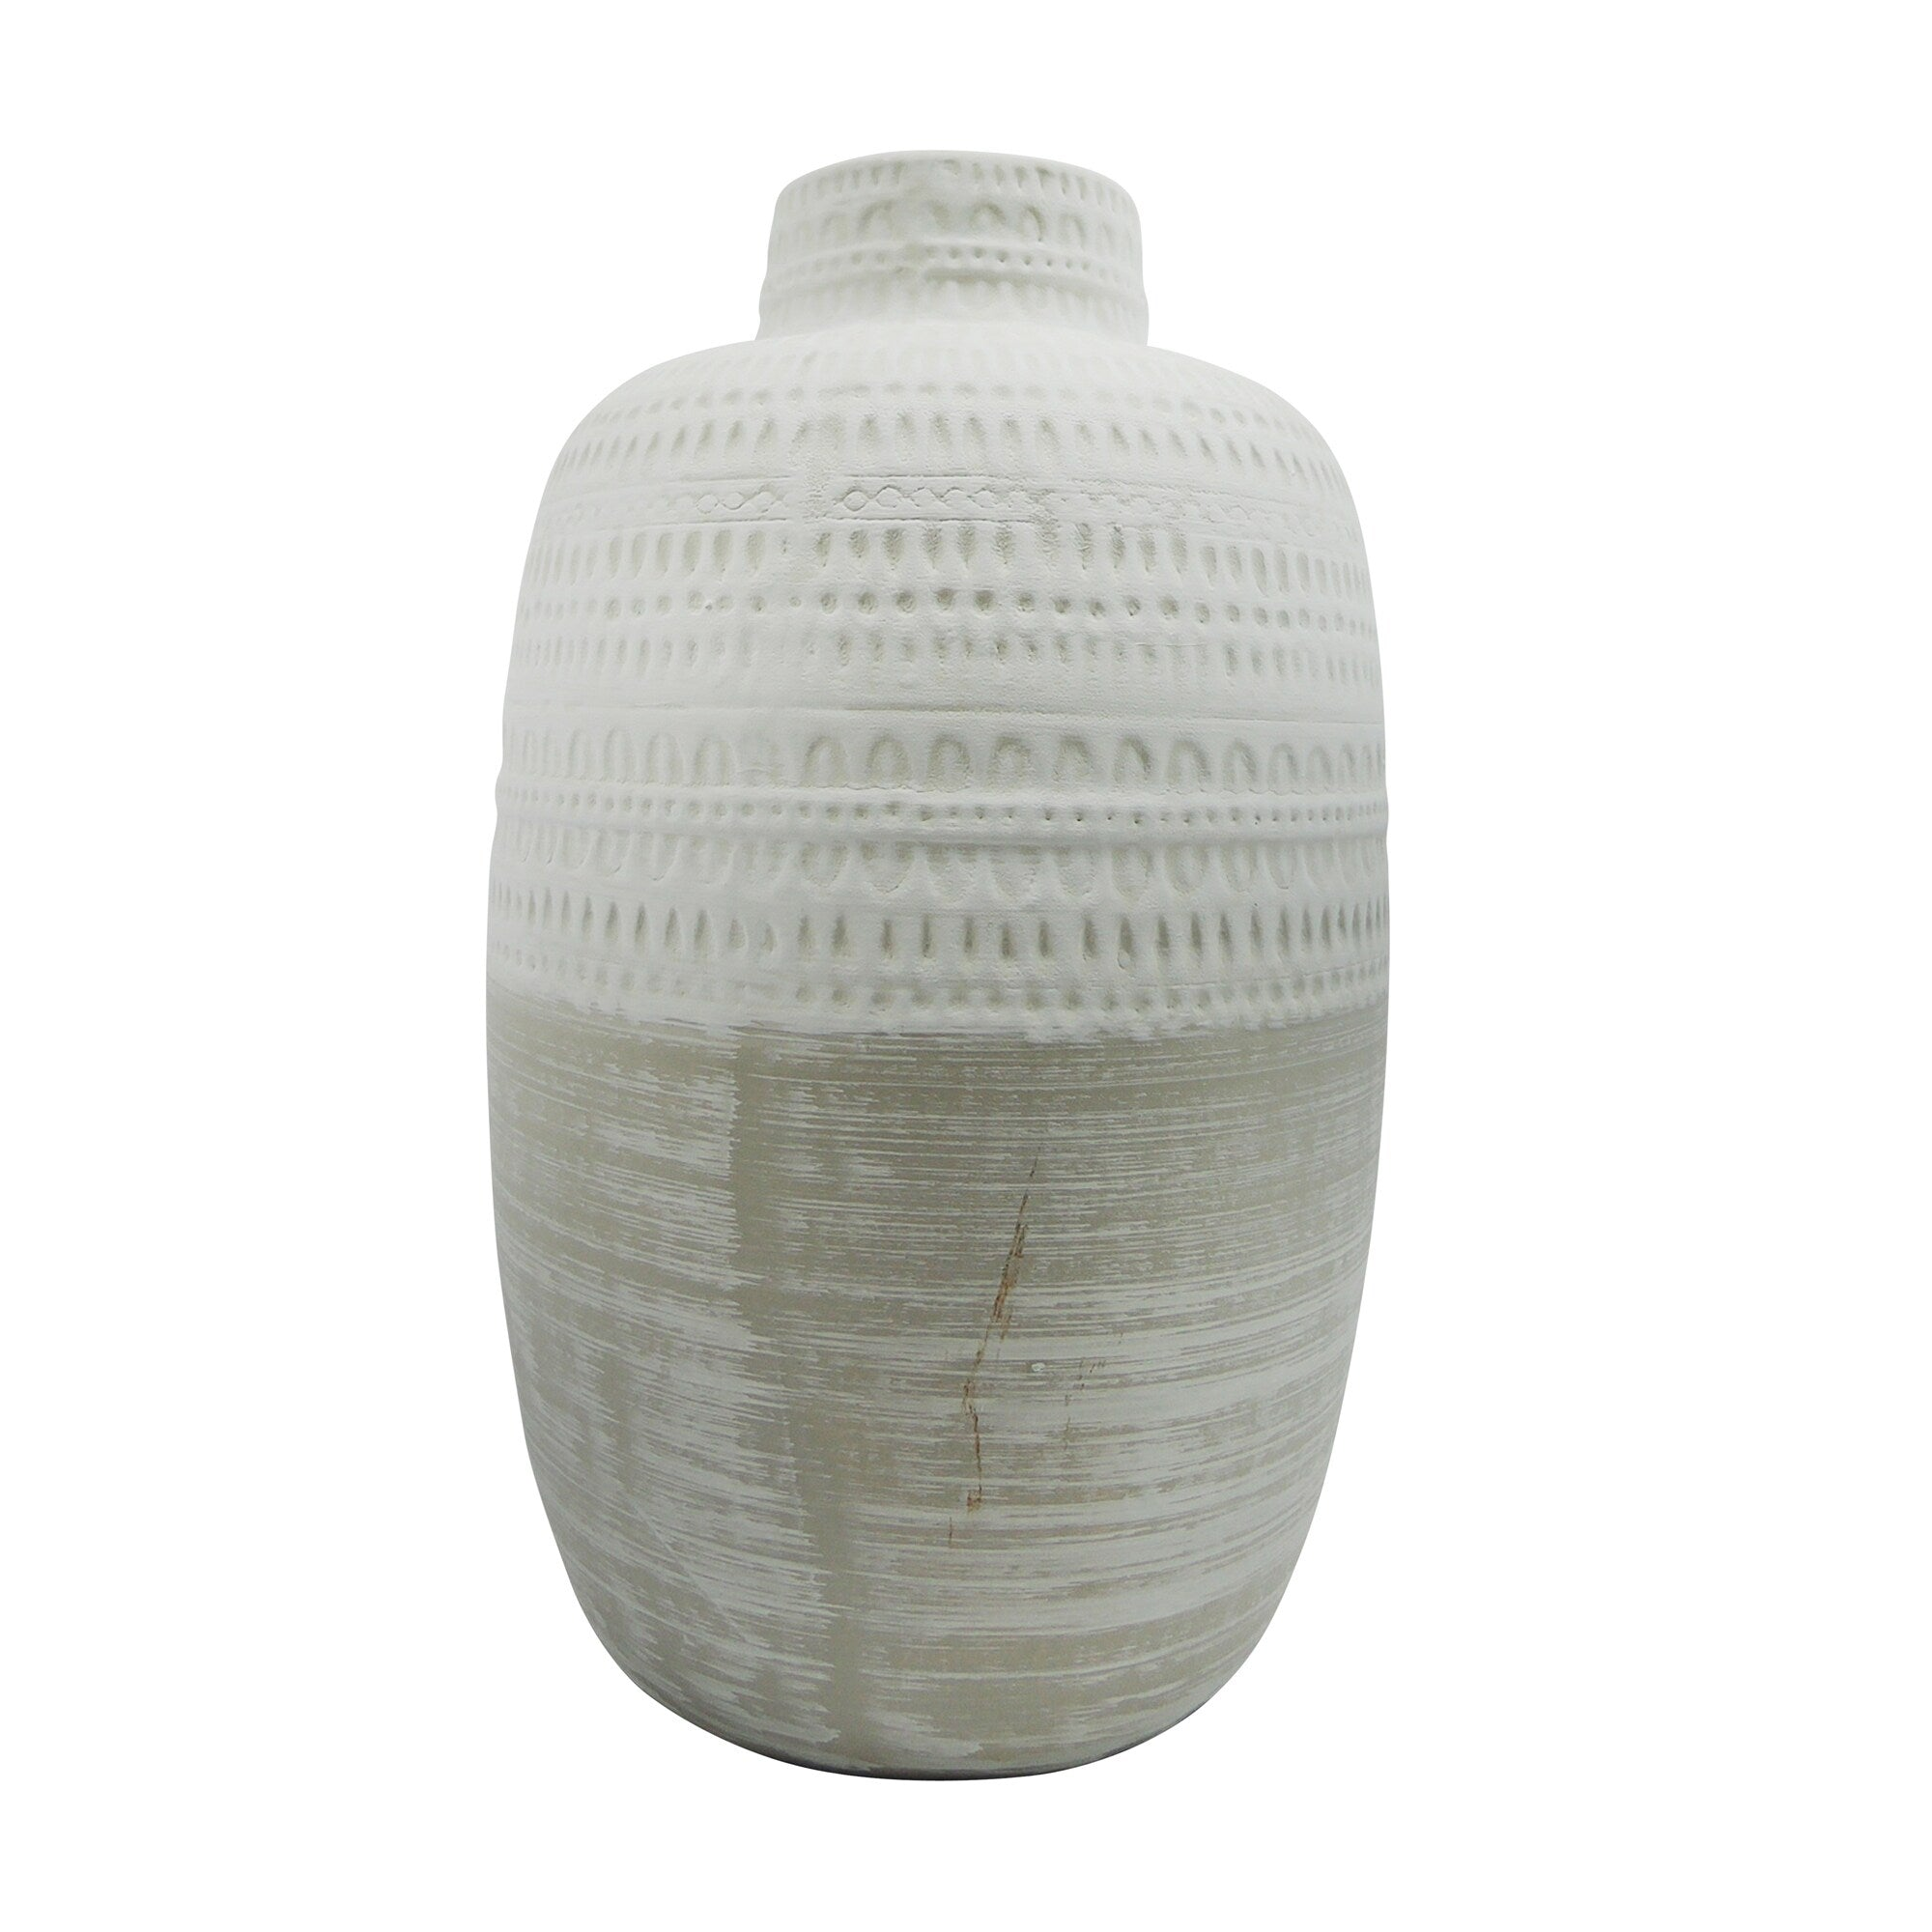 BEIGE CERAMIC TRIBAL VASE